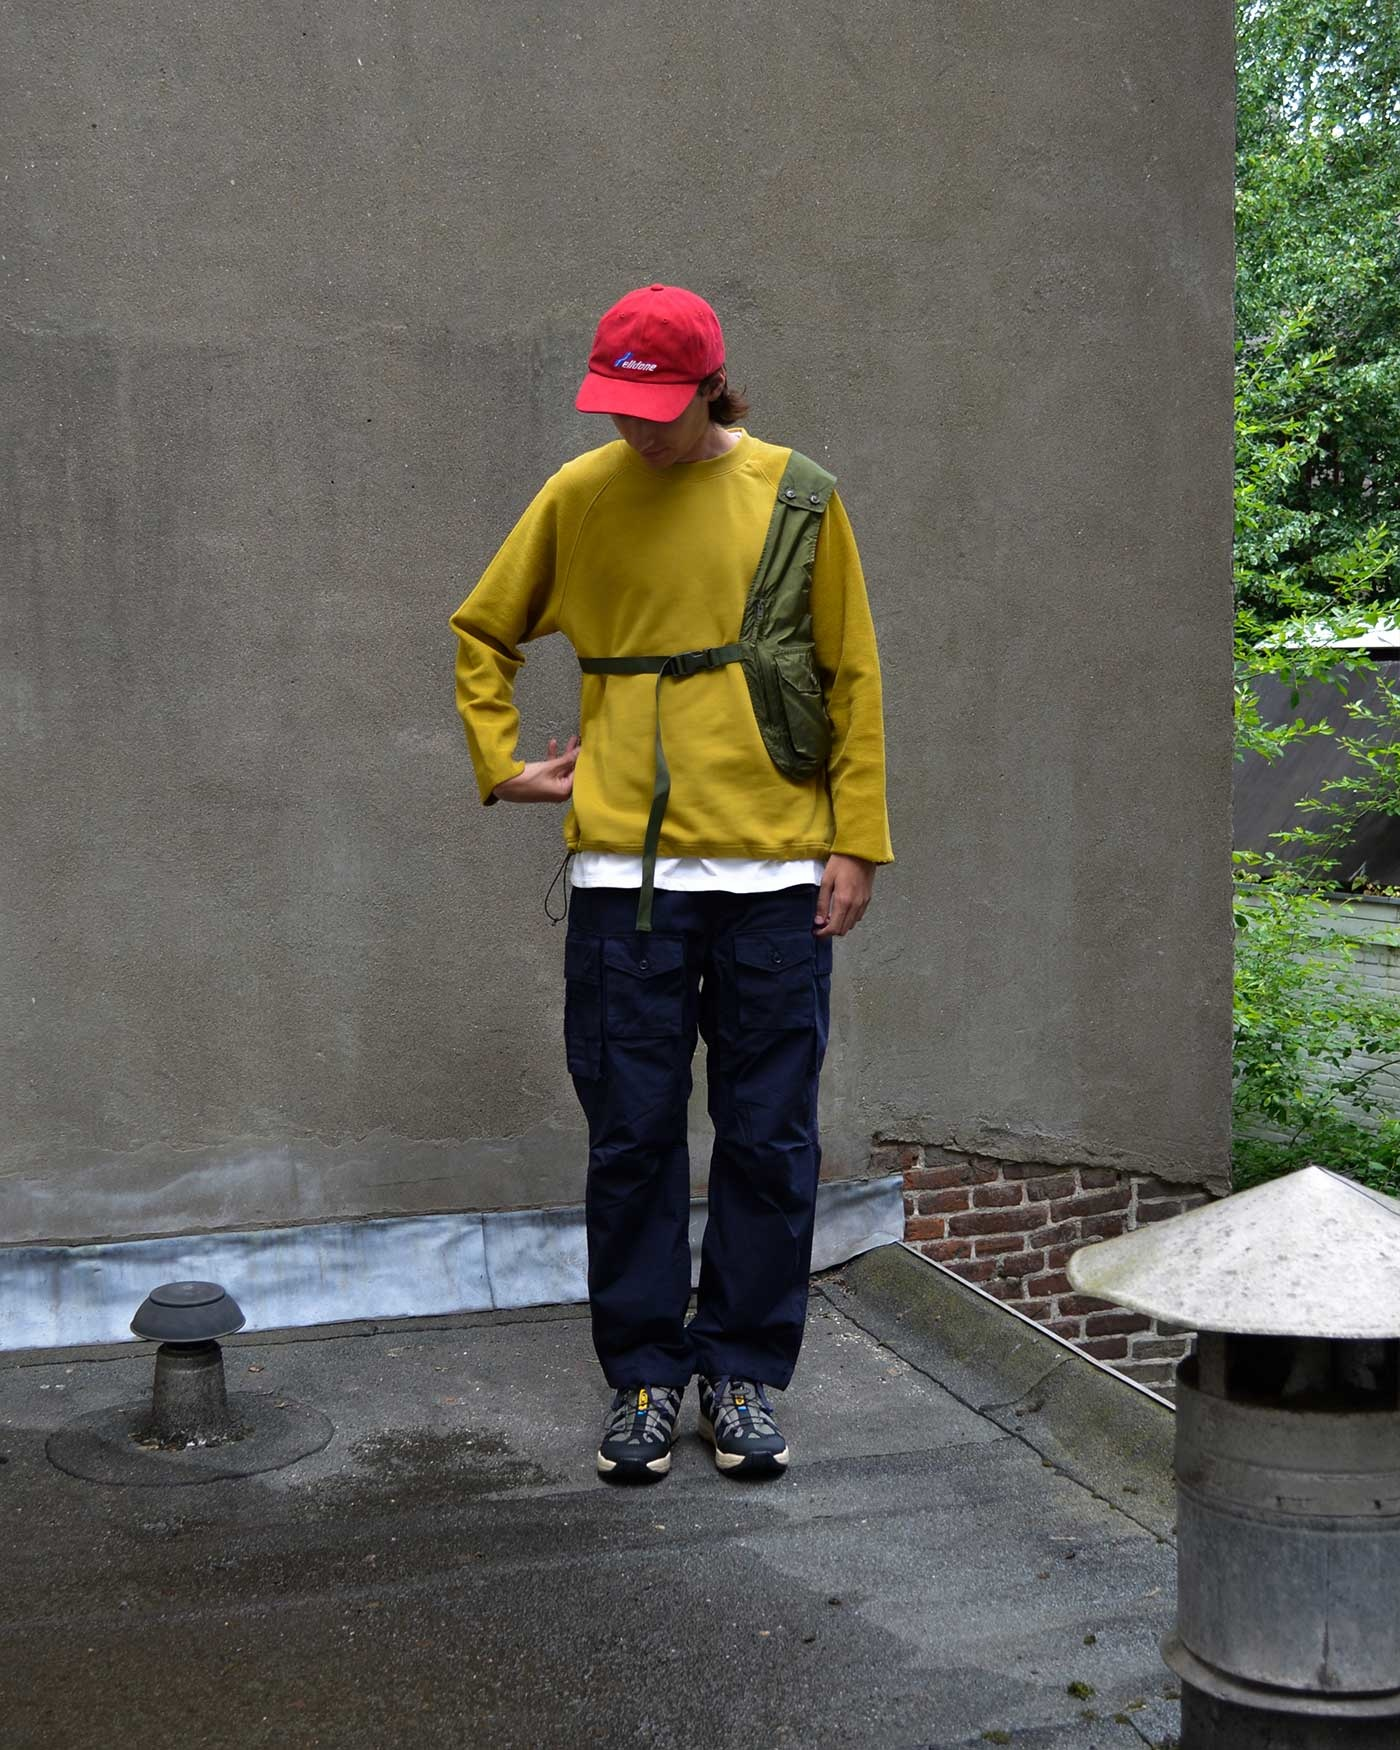 Noe wears a red WE11DONE cap, mustard Uniform Bridge sweater, Salomon shoes and both an Olive Engineered Garments shoulder bag and navy pants